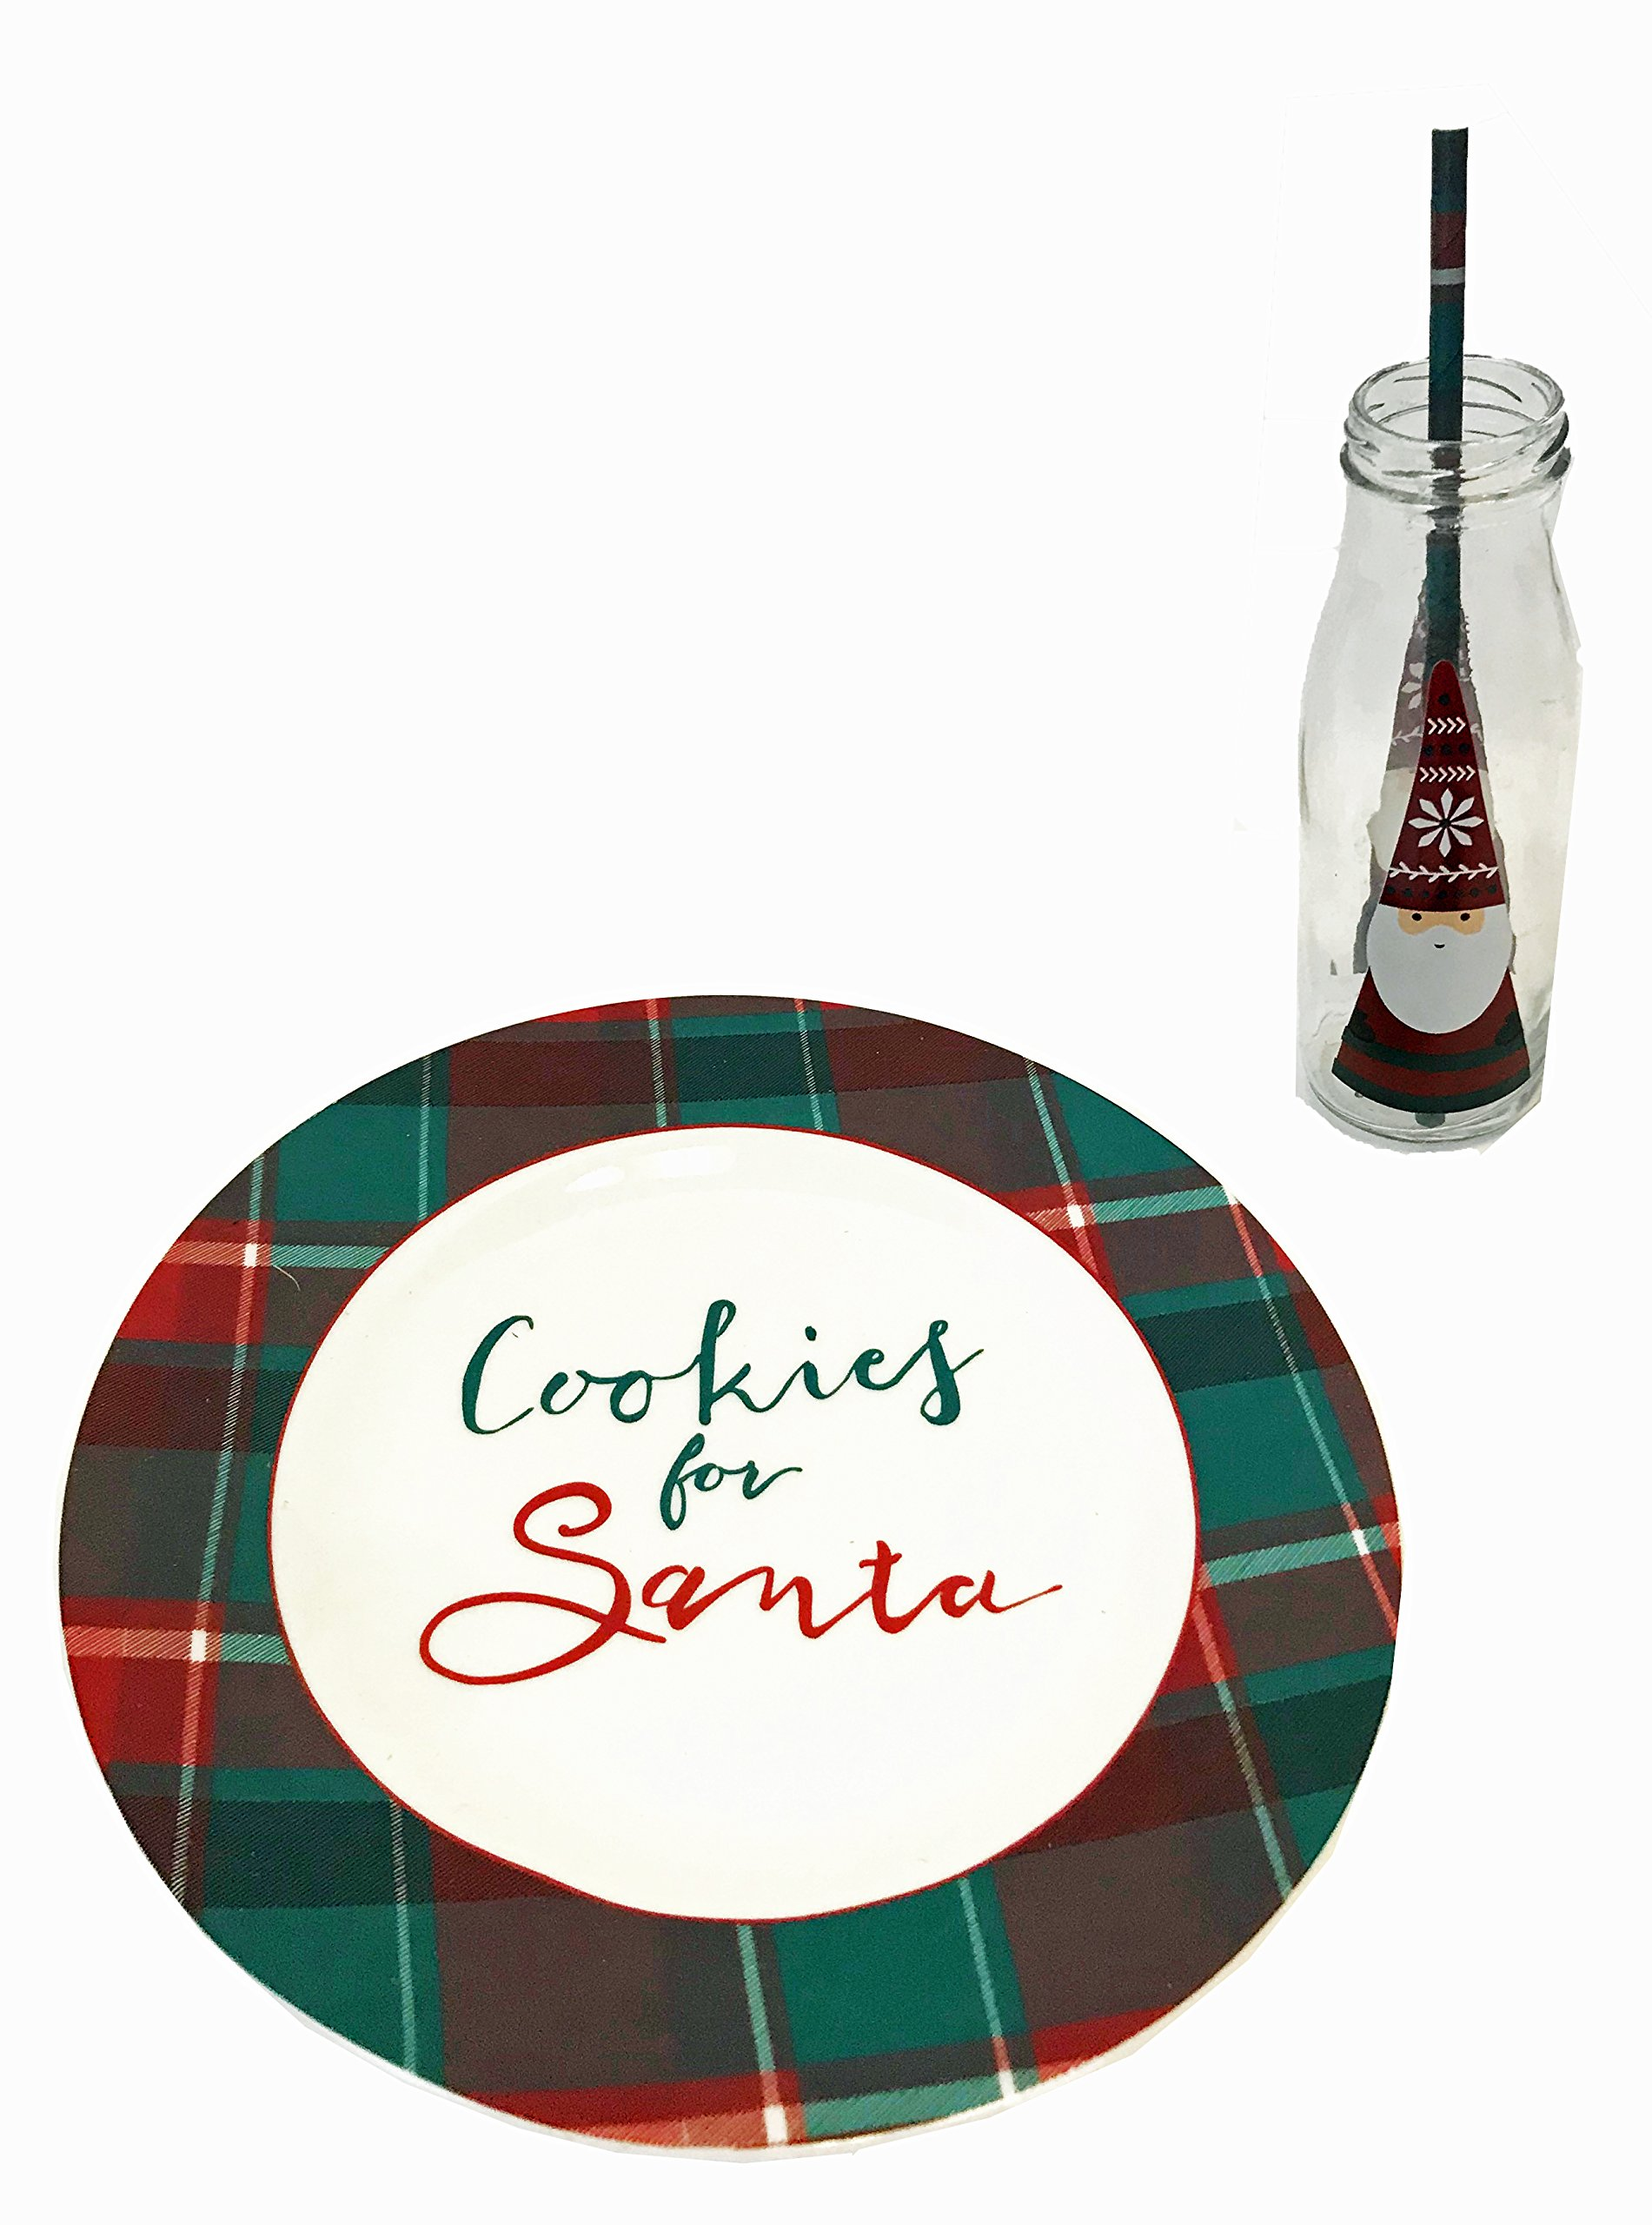 Cookies For Santa Christmas Gift Set with Plate, Milk Bottle and Straw, Plaid (Plaid)